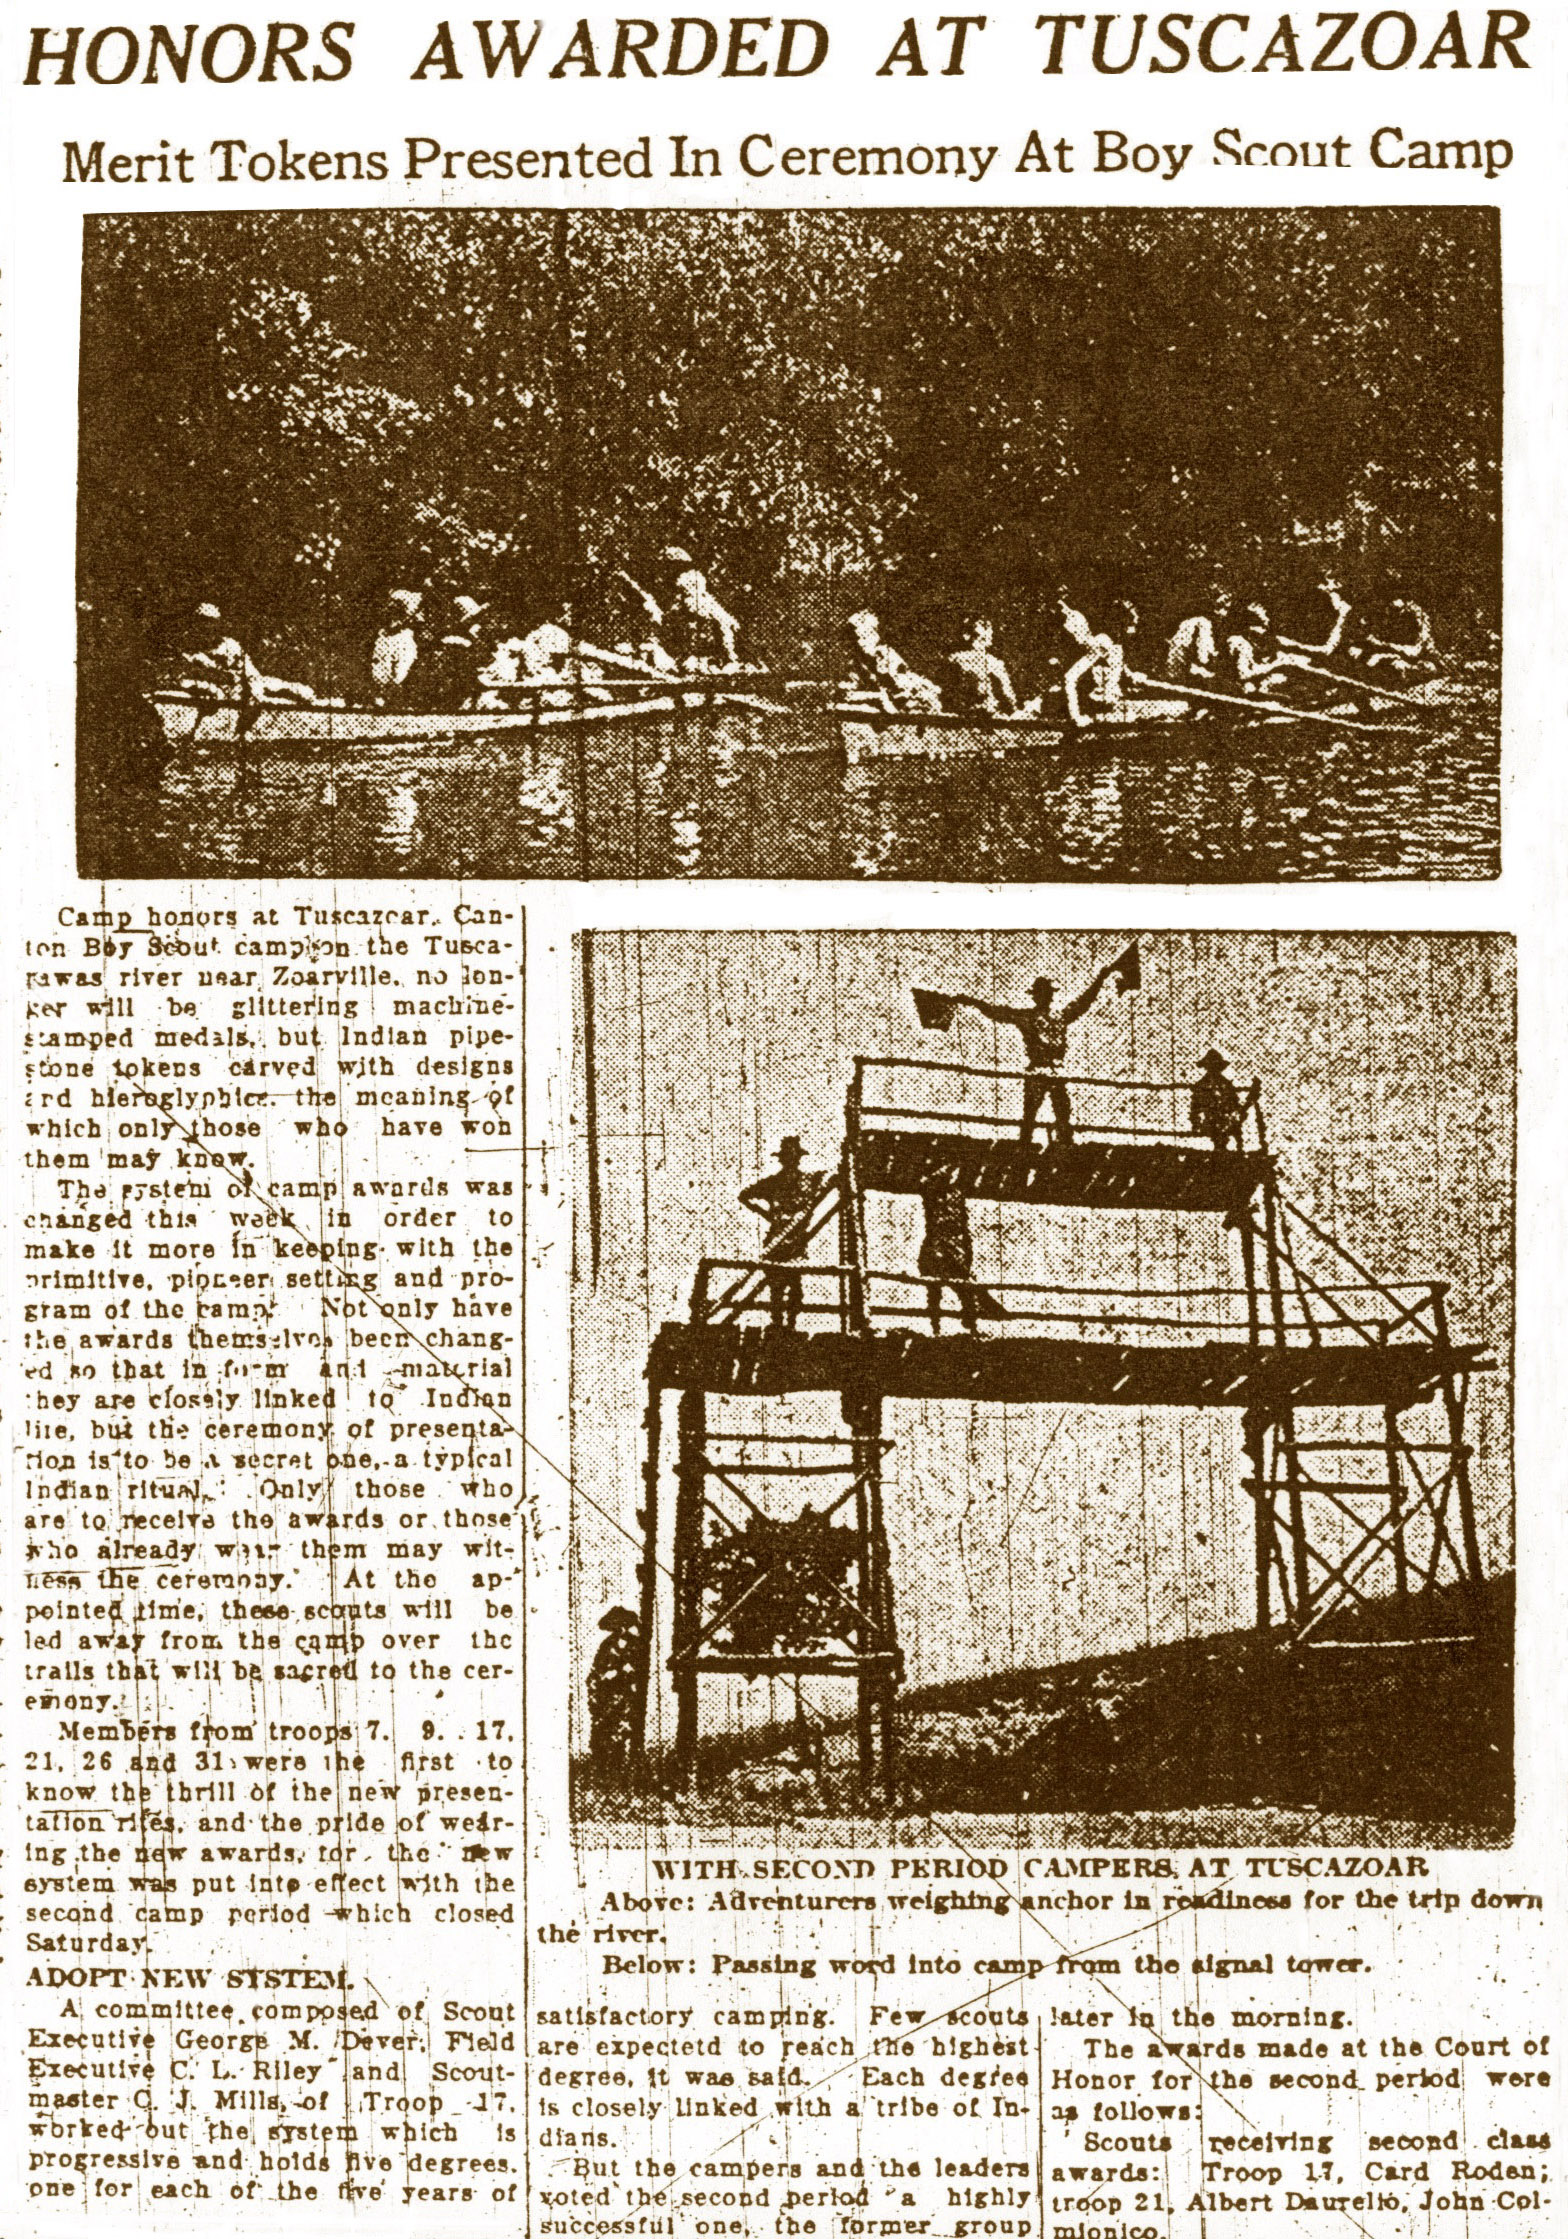 Canton Repository article in July 1926